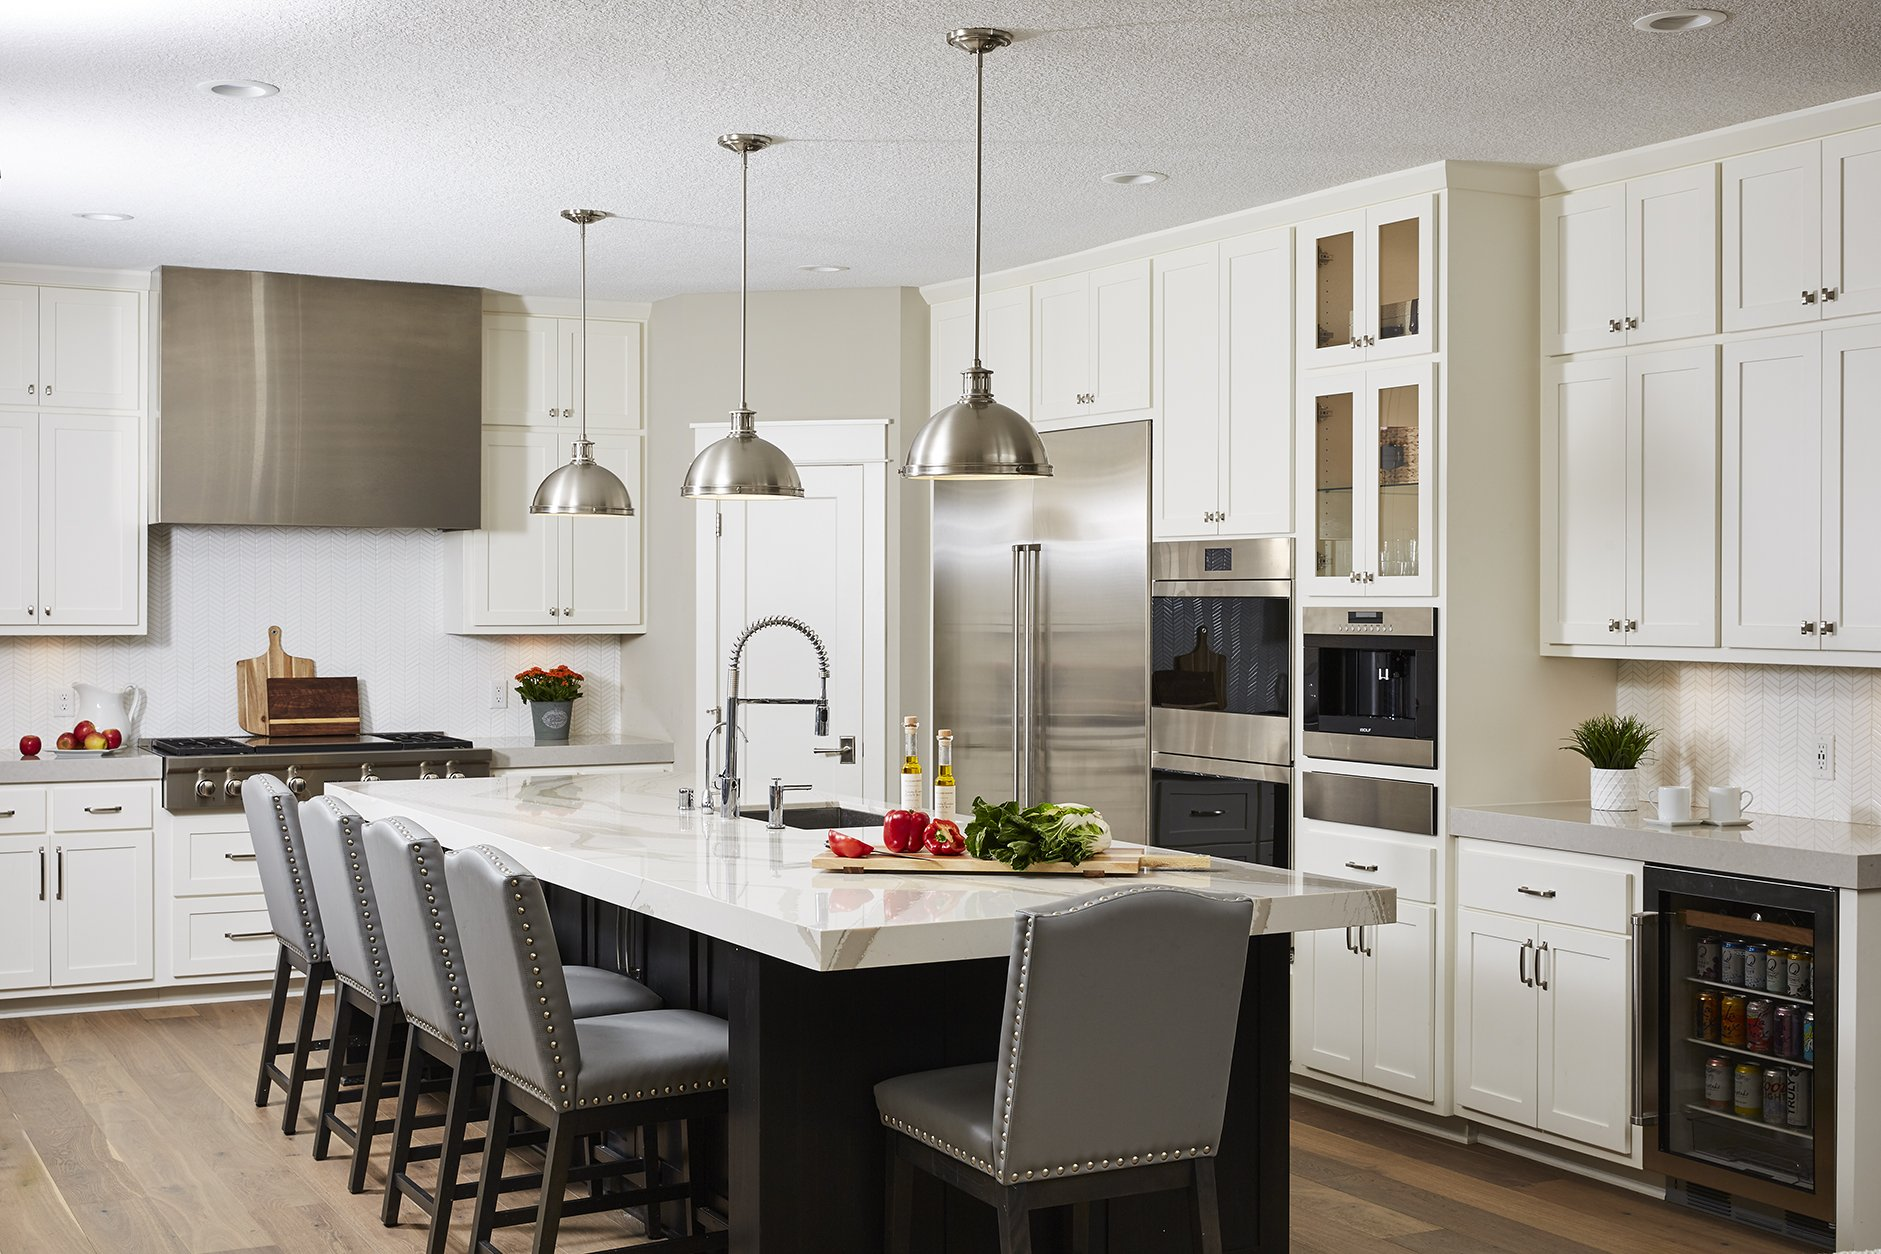 A spacious kitchen island was created to allow for plenty of room for the entire family to socialize, prep food, and eat.